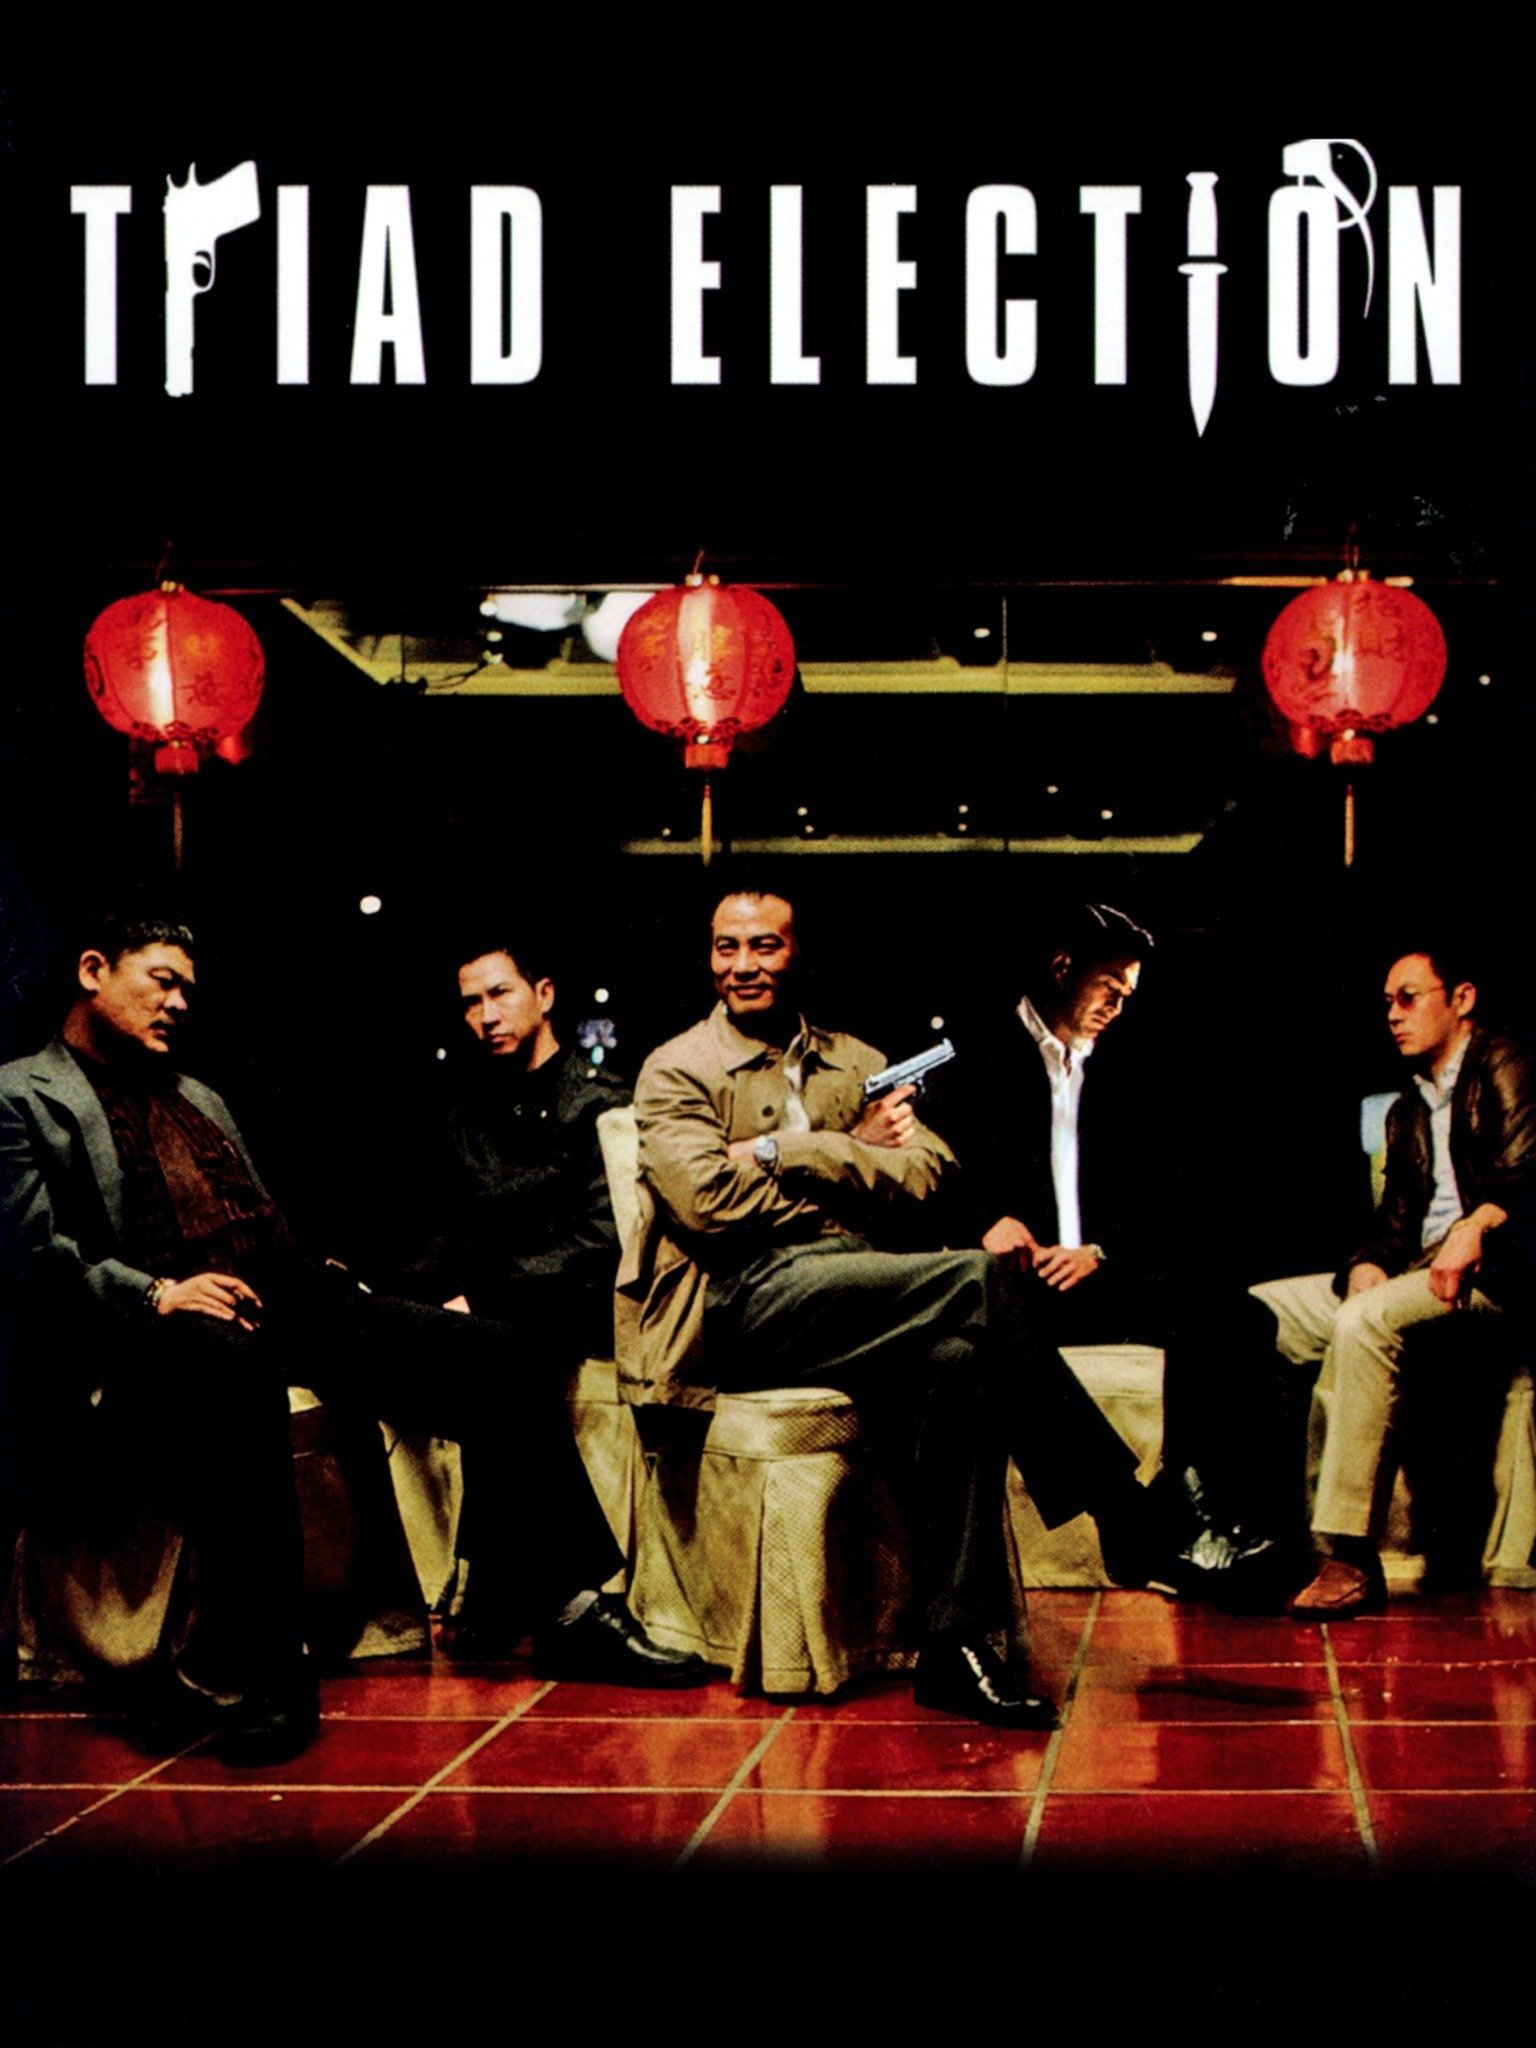 Triad Election (Hak se wui yi wo wai kwai)